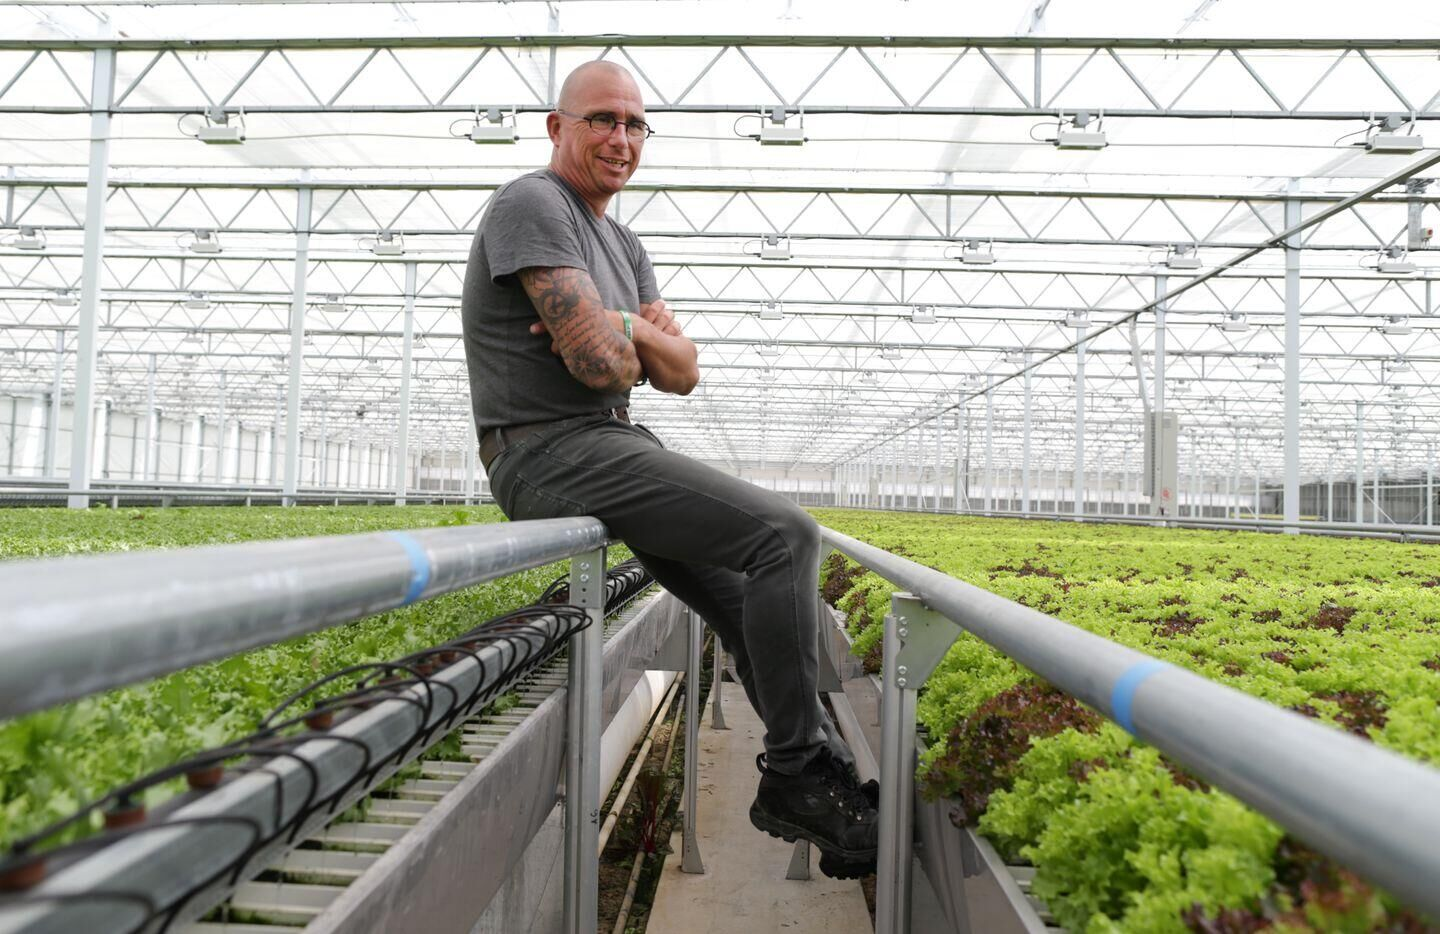 InGreenhouses: This greenhouse has everything a grower could dream of!